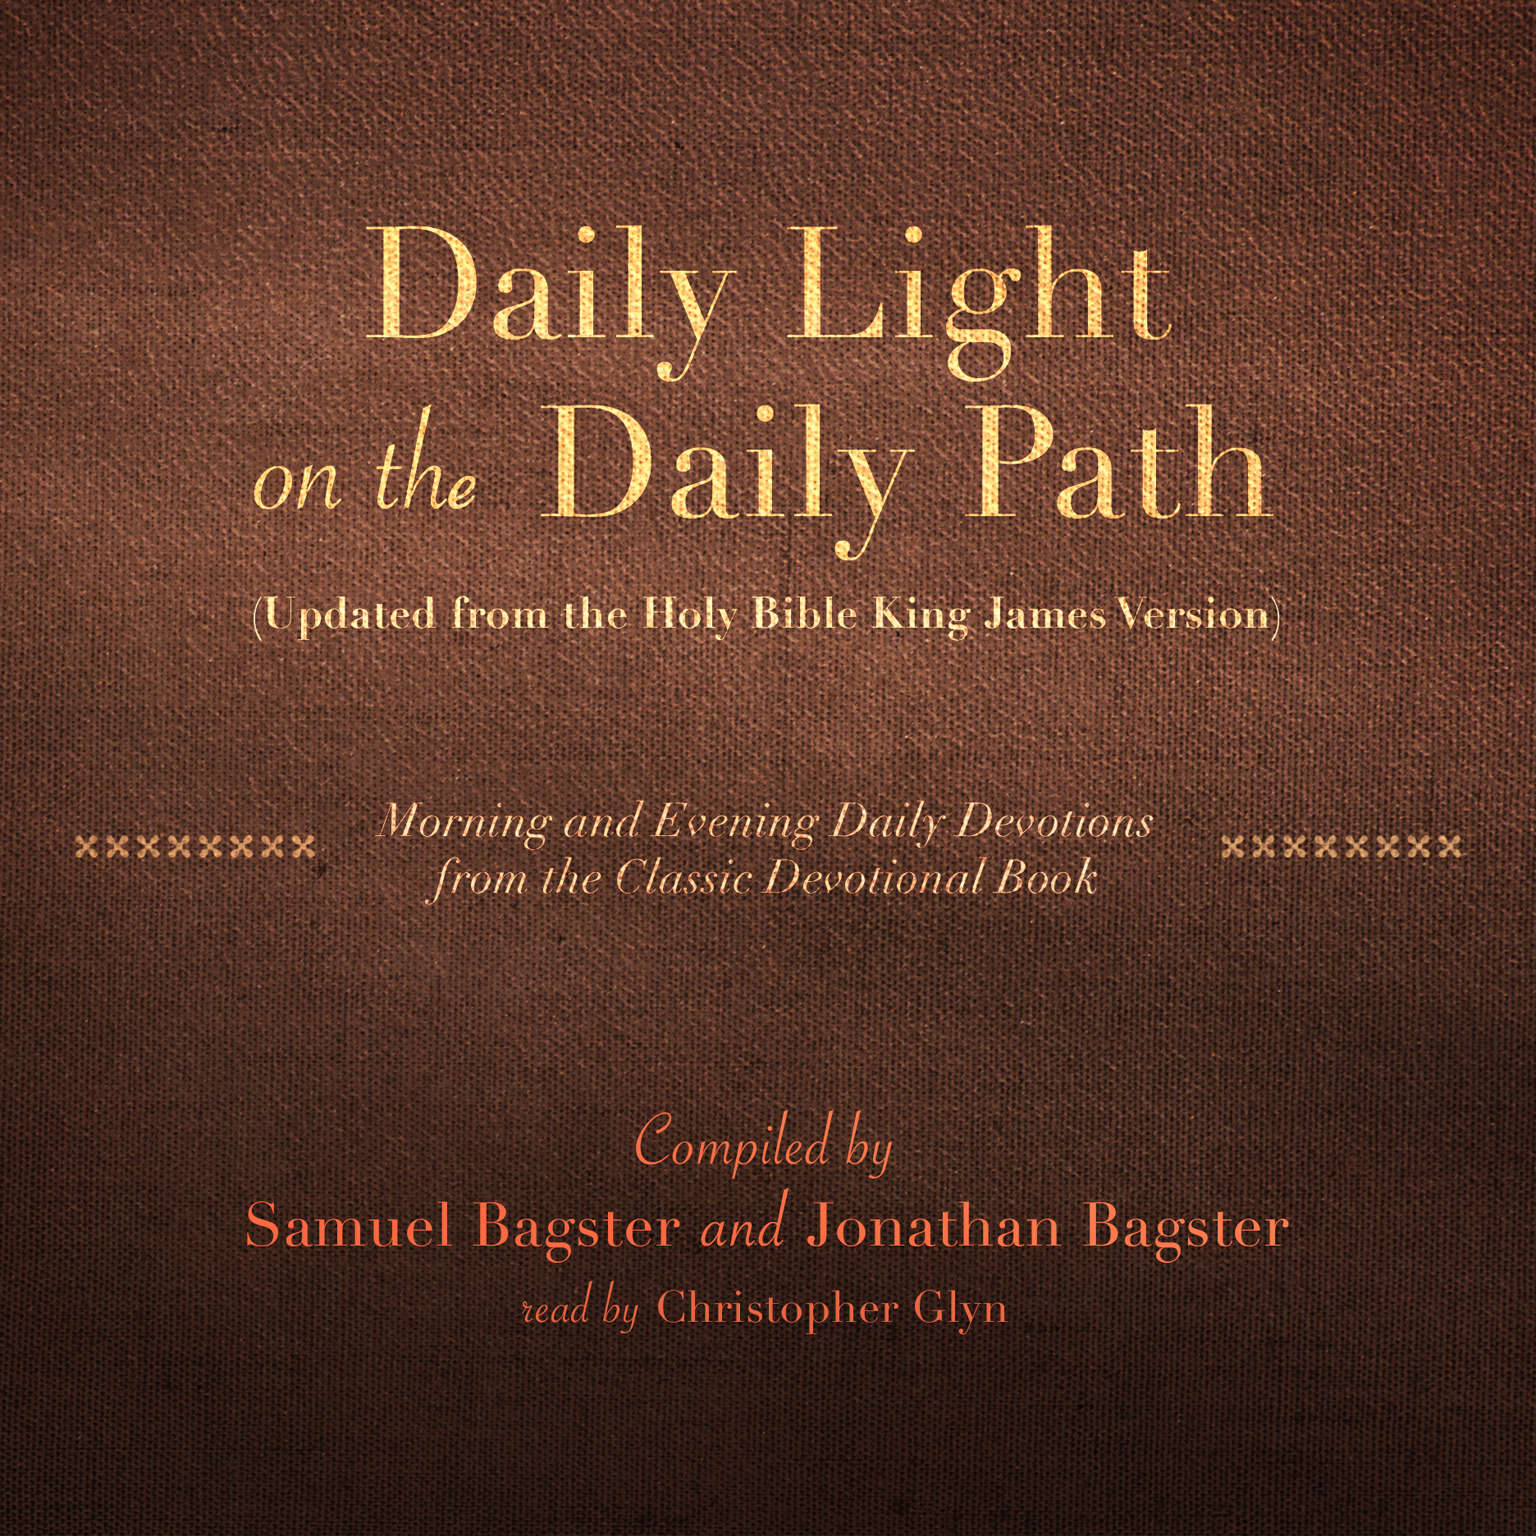 Printable Daily Light on the Daily Path (Updated from the Holy Bible King James Version): Morning and Evening Daily Devotions from the Classic Devotional Book Audiobook Cover Art